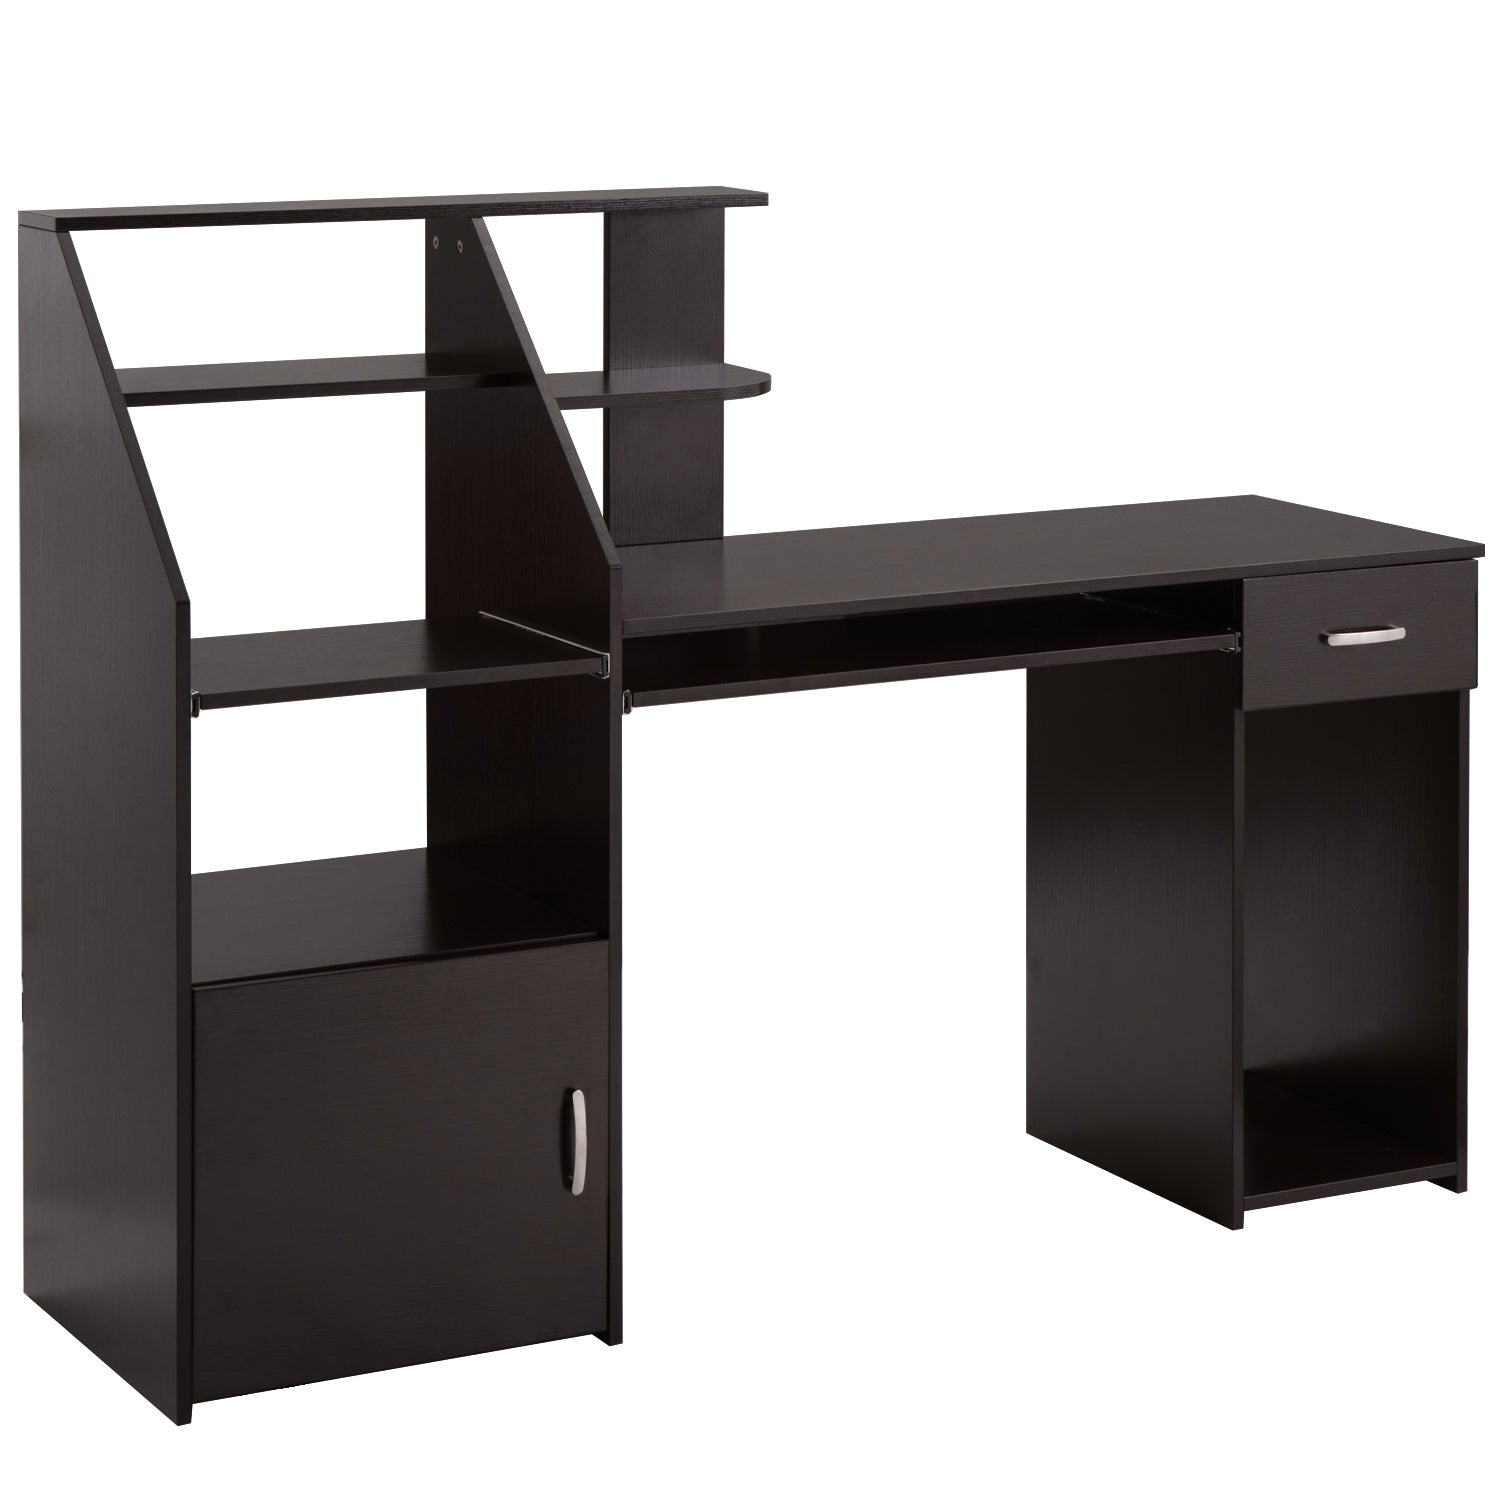 Black Multi-Functions Computer Desk with Cabinet Espresso BH186907